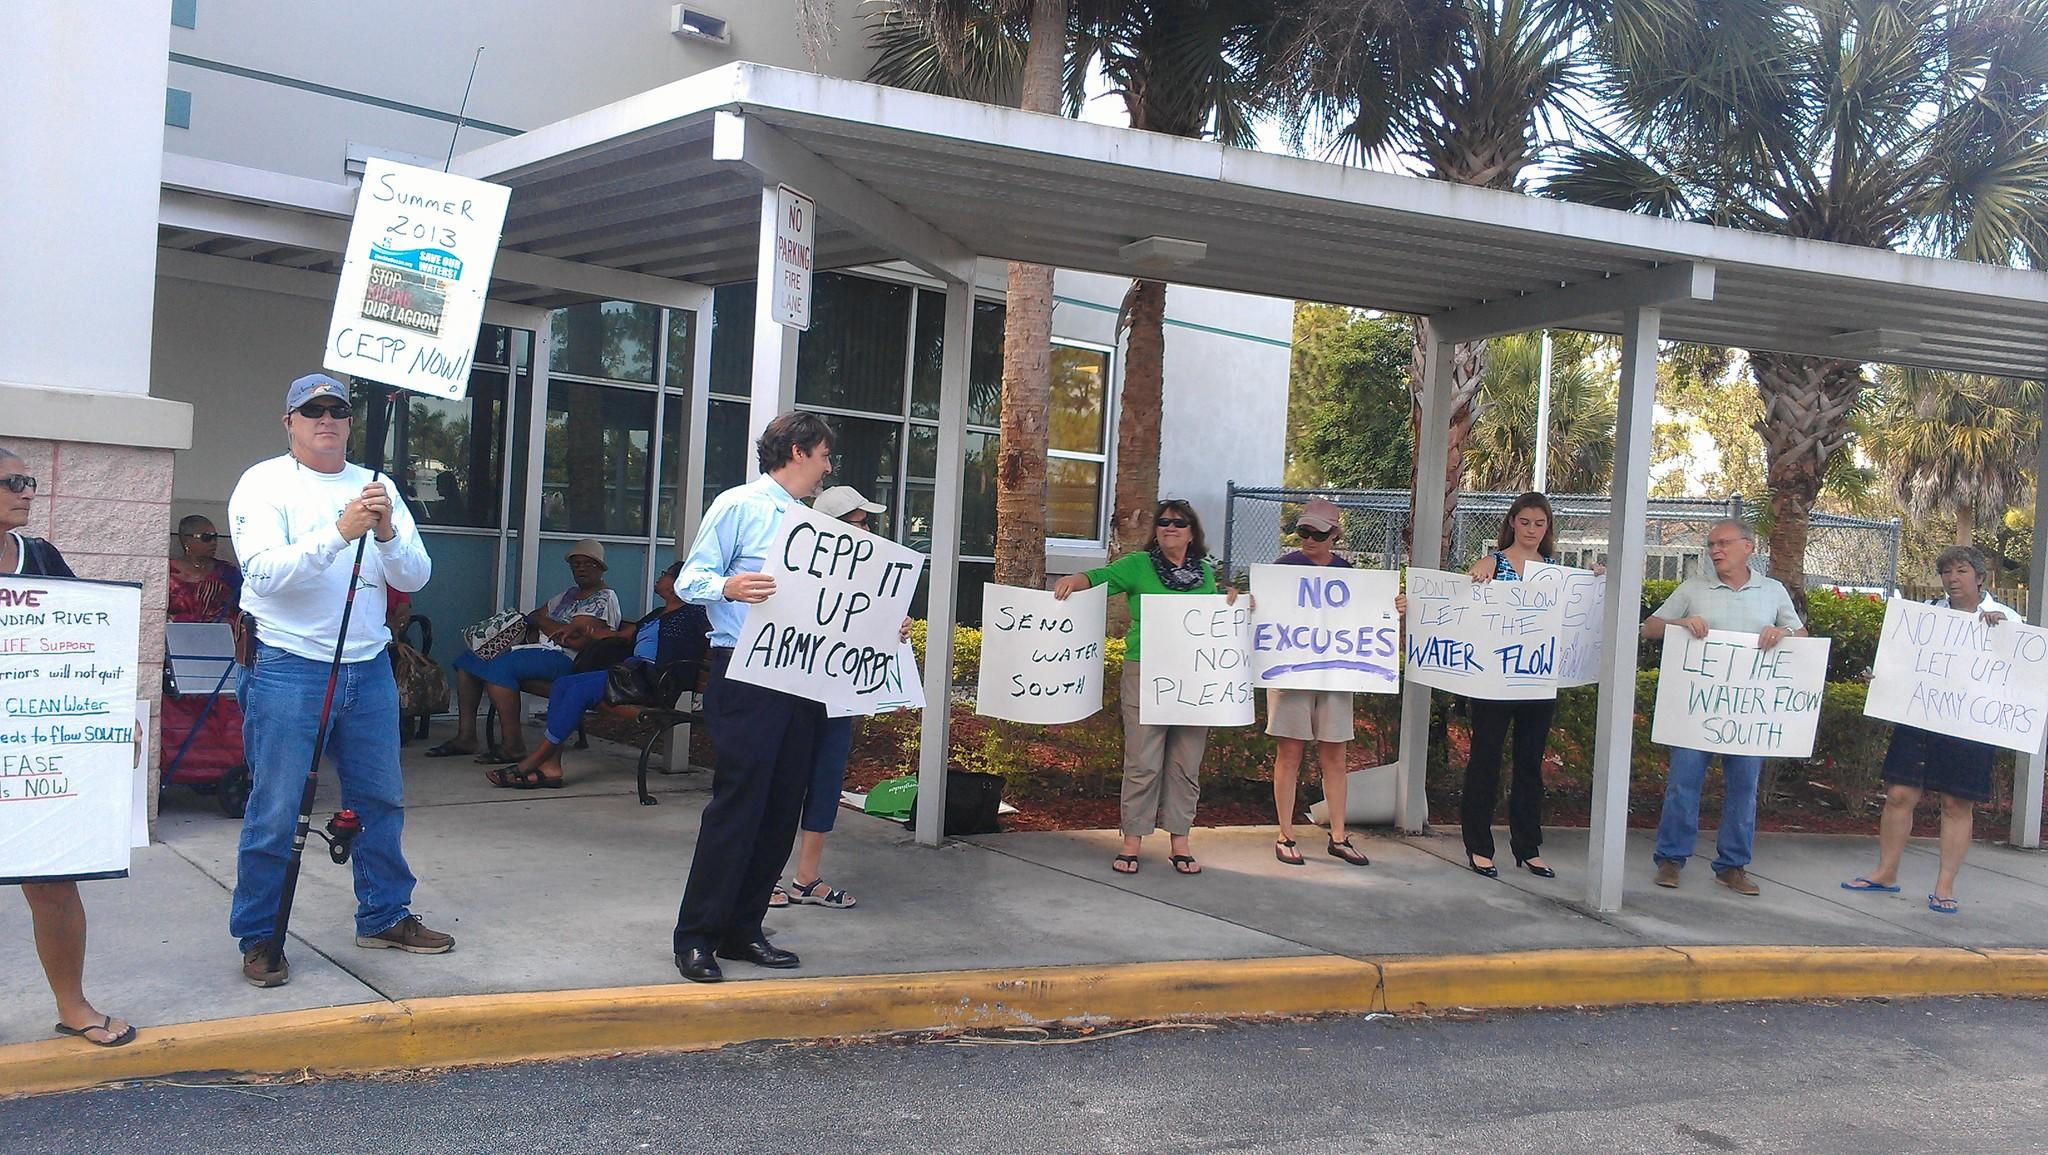 About a dozen protestors from the Sierra Club on Wednesday gathered outside of a meeting of state and federal officials in Royal Palm Beach, calling on them to reconsider the Central Everglades plan.